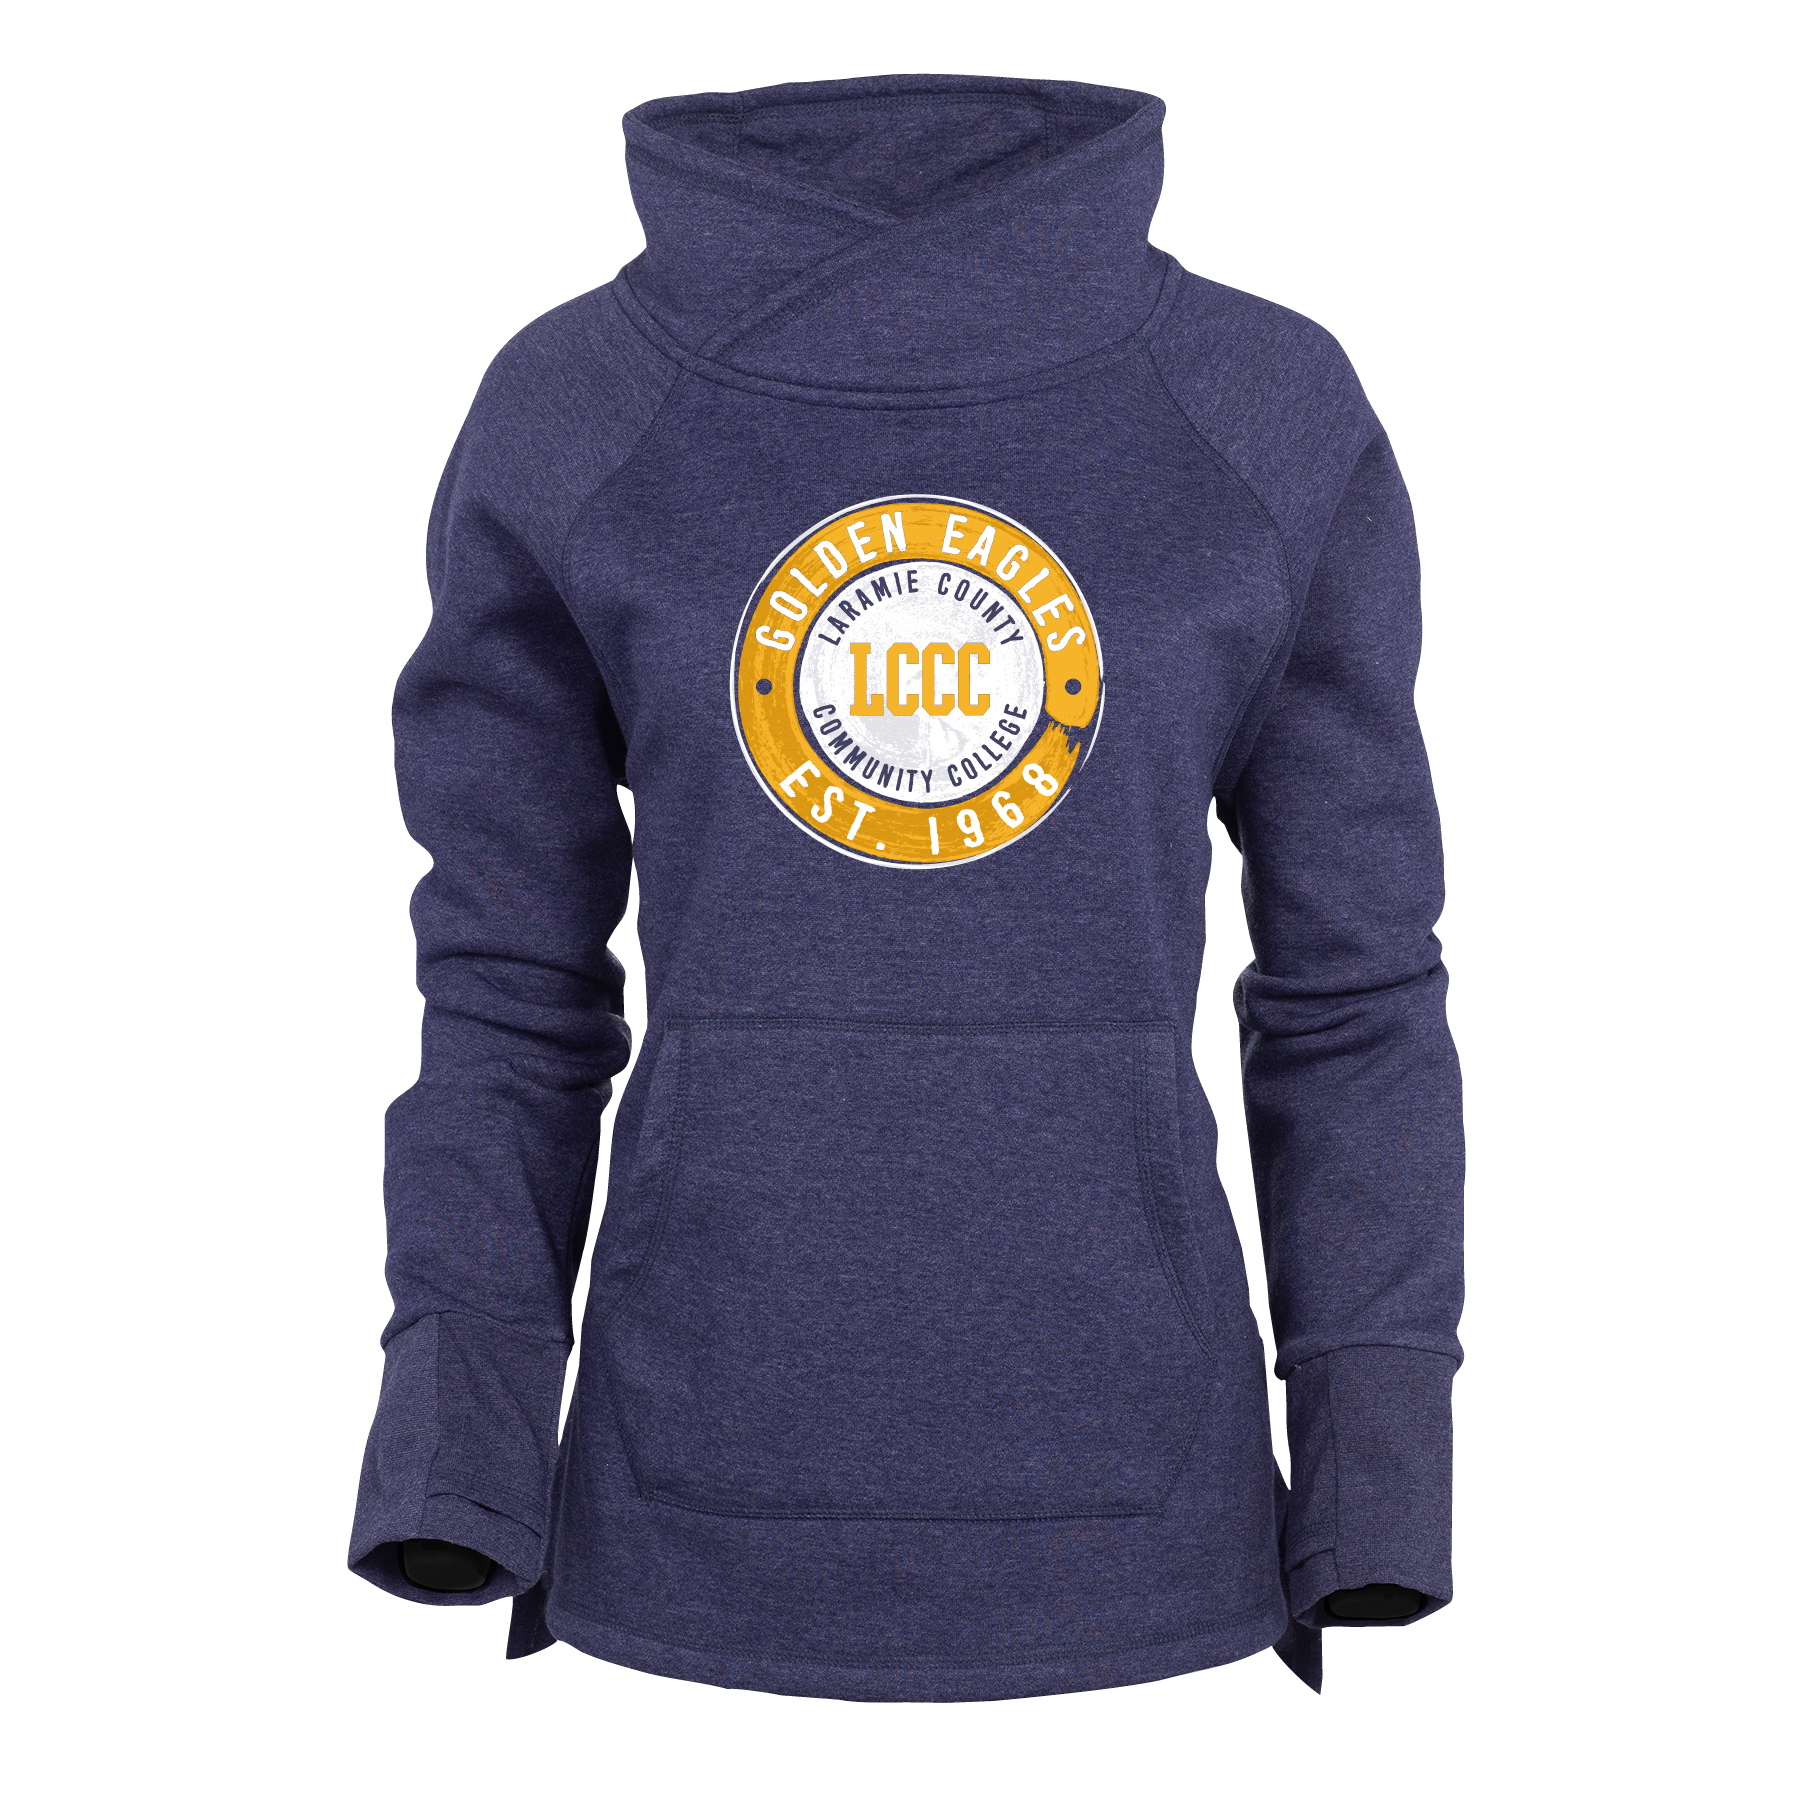 LCCC Est. 1968 Cozy Funnel Neck Sweatshirt